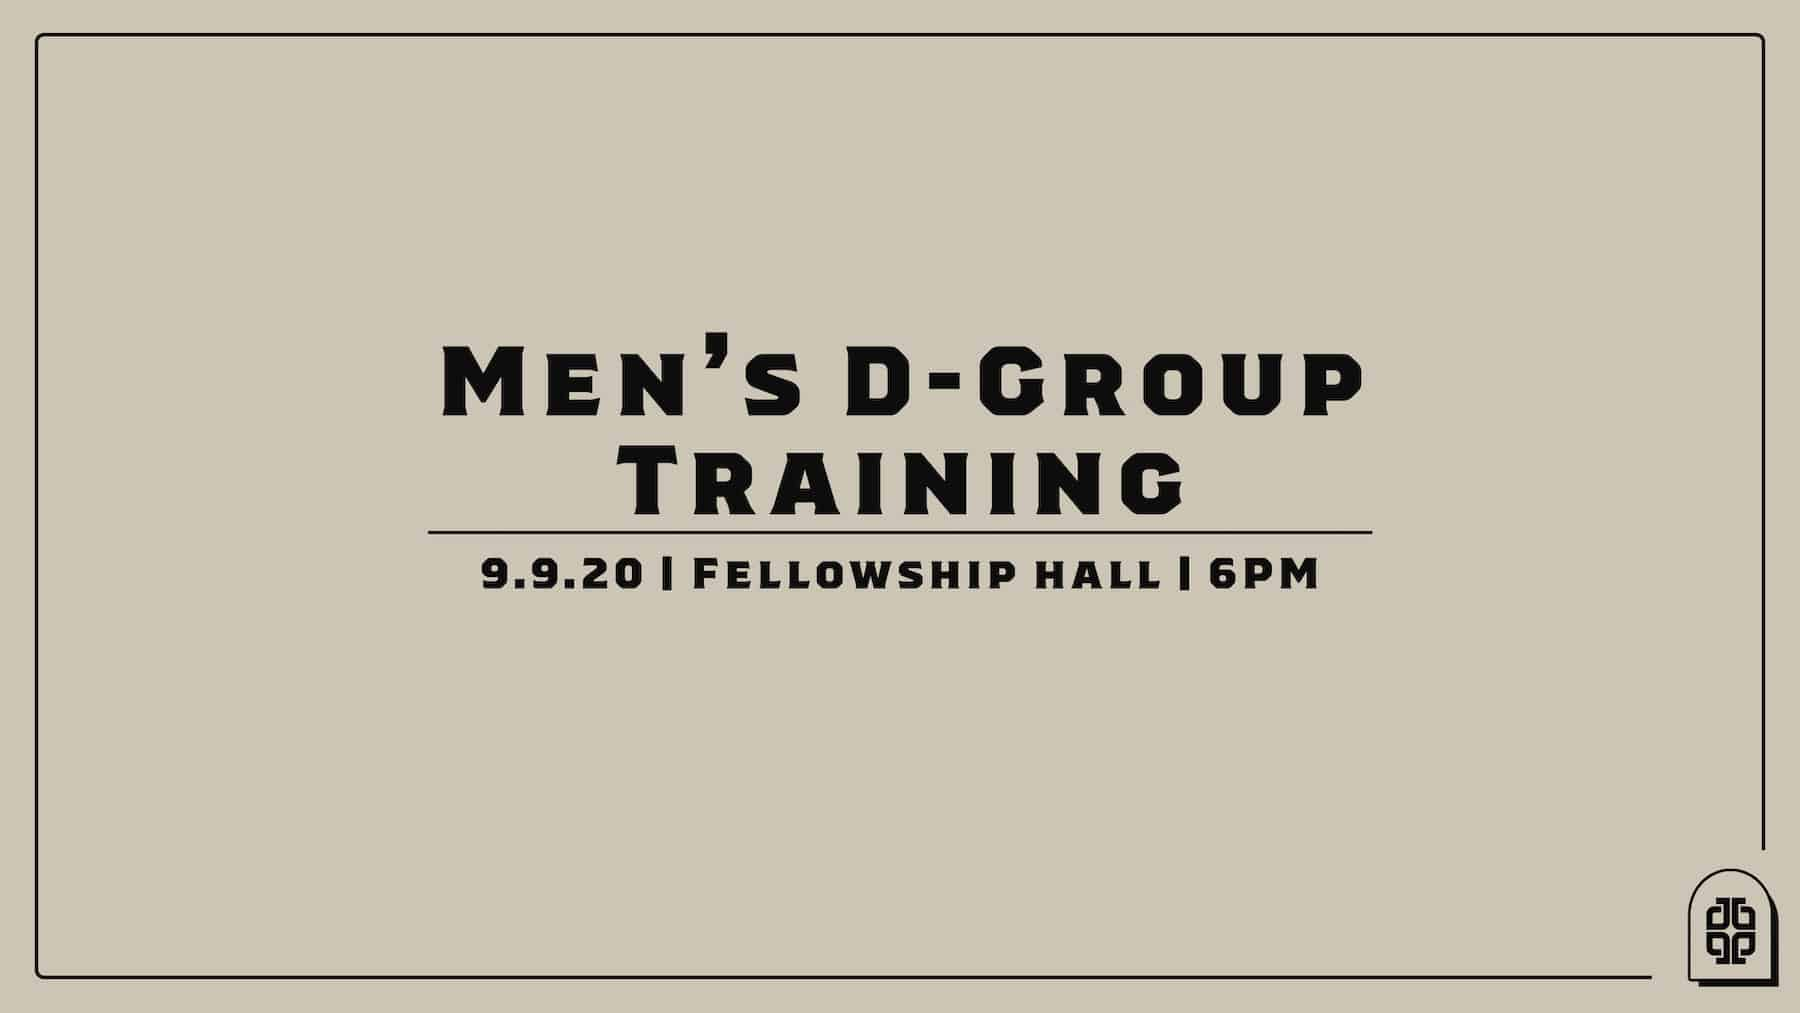 Men's D-Group Training